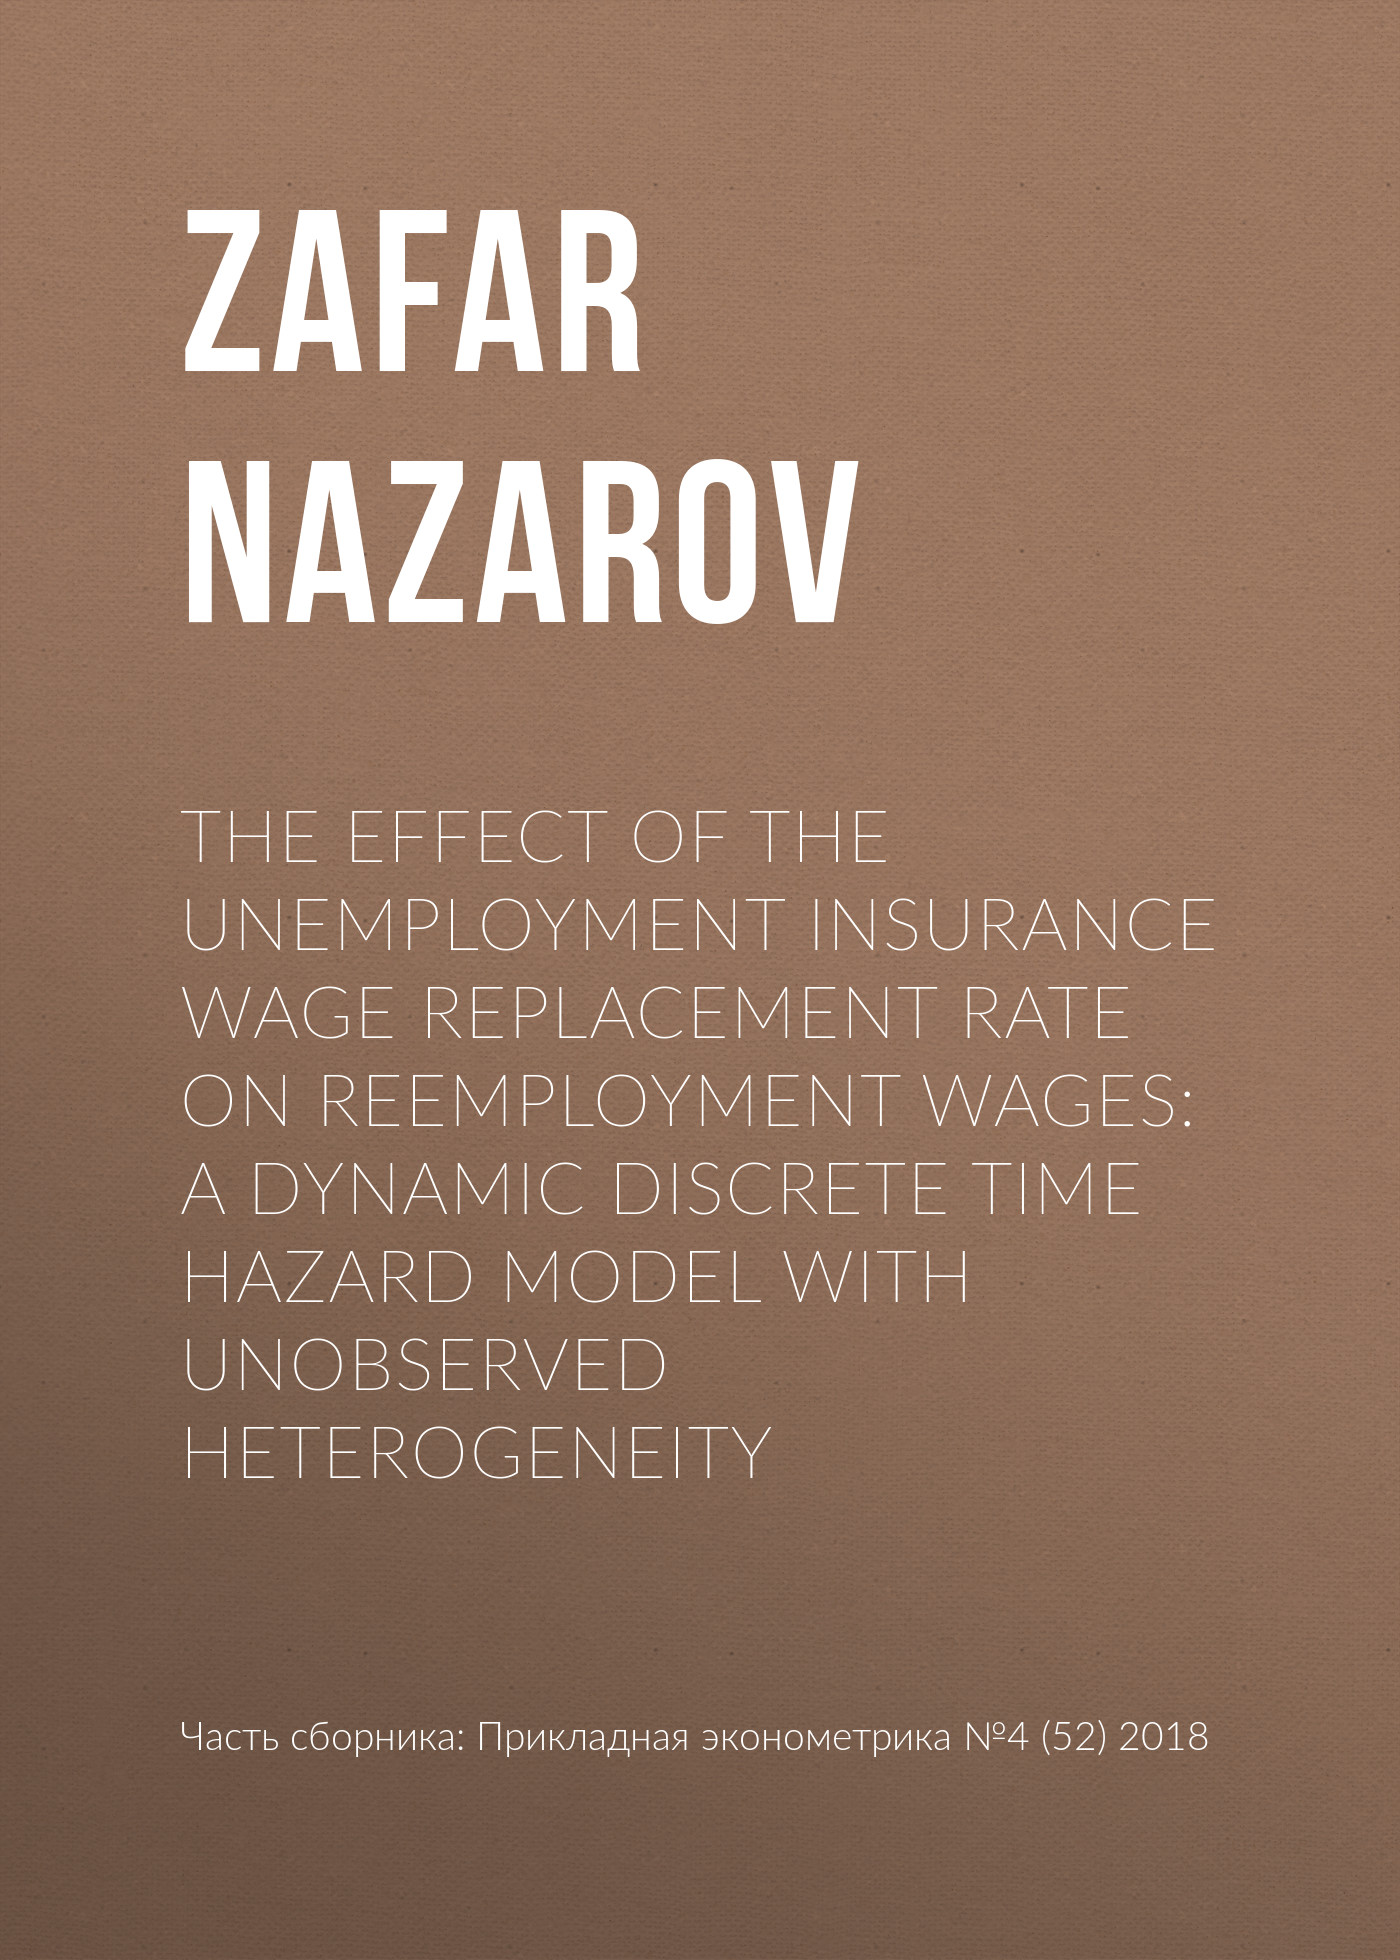 Zafar Nazarov The effect of the unemployment insurance wage replacement rate on reemployment wages: A dynamic discrete time hazard model with unobserved heterogeneity finding the champion within